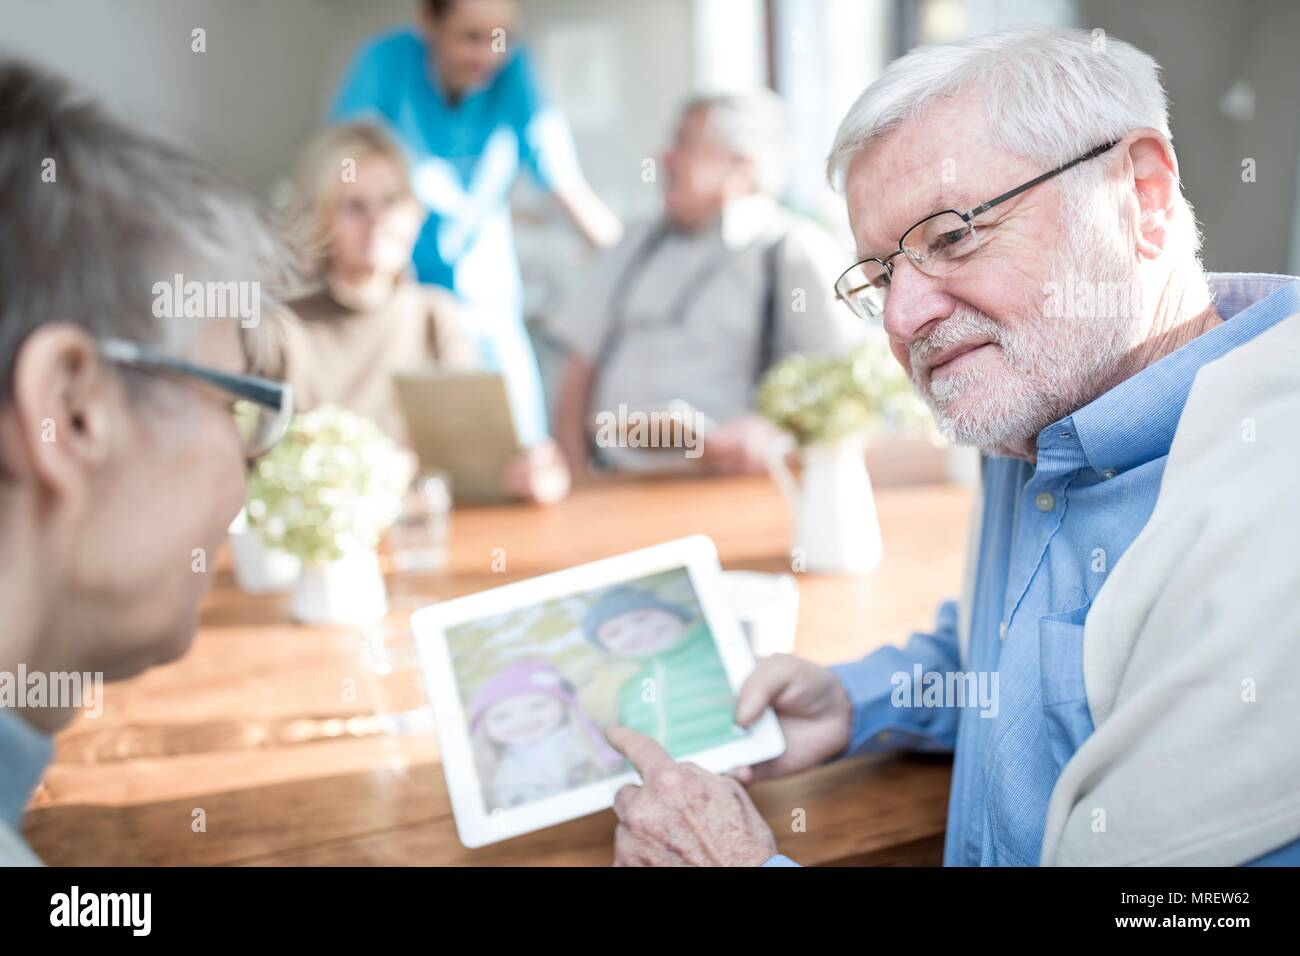 Senior adults looking at photos on digital tablet in care home. - Stock Image